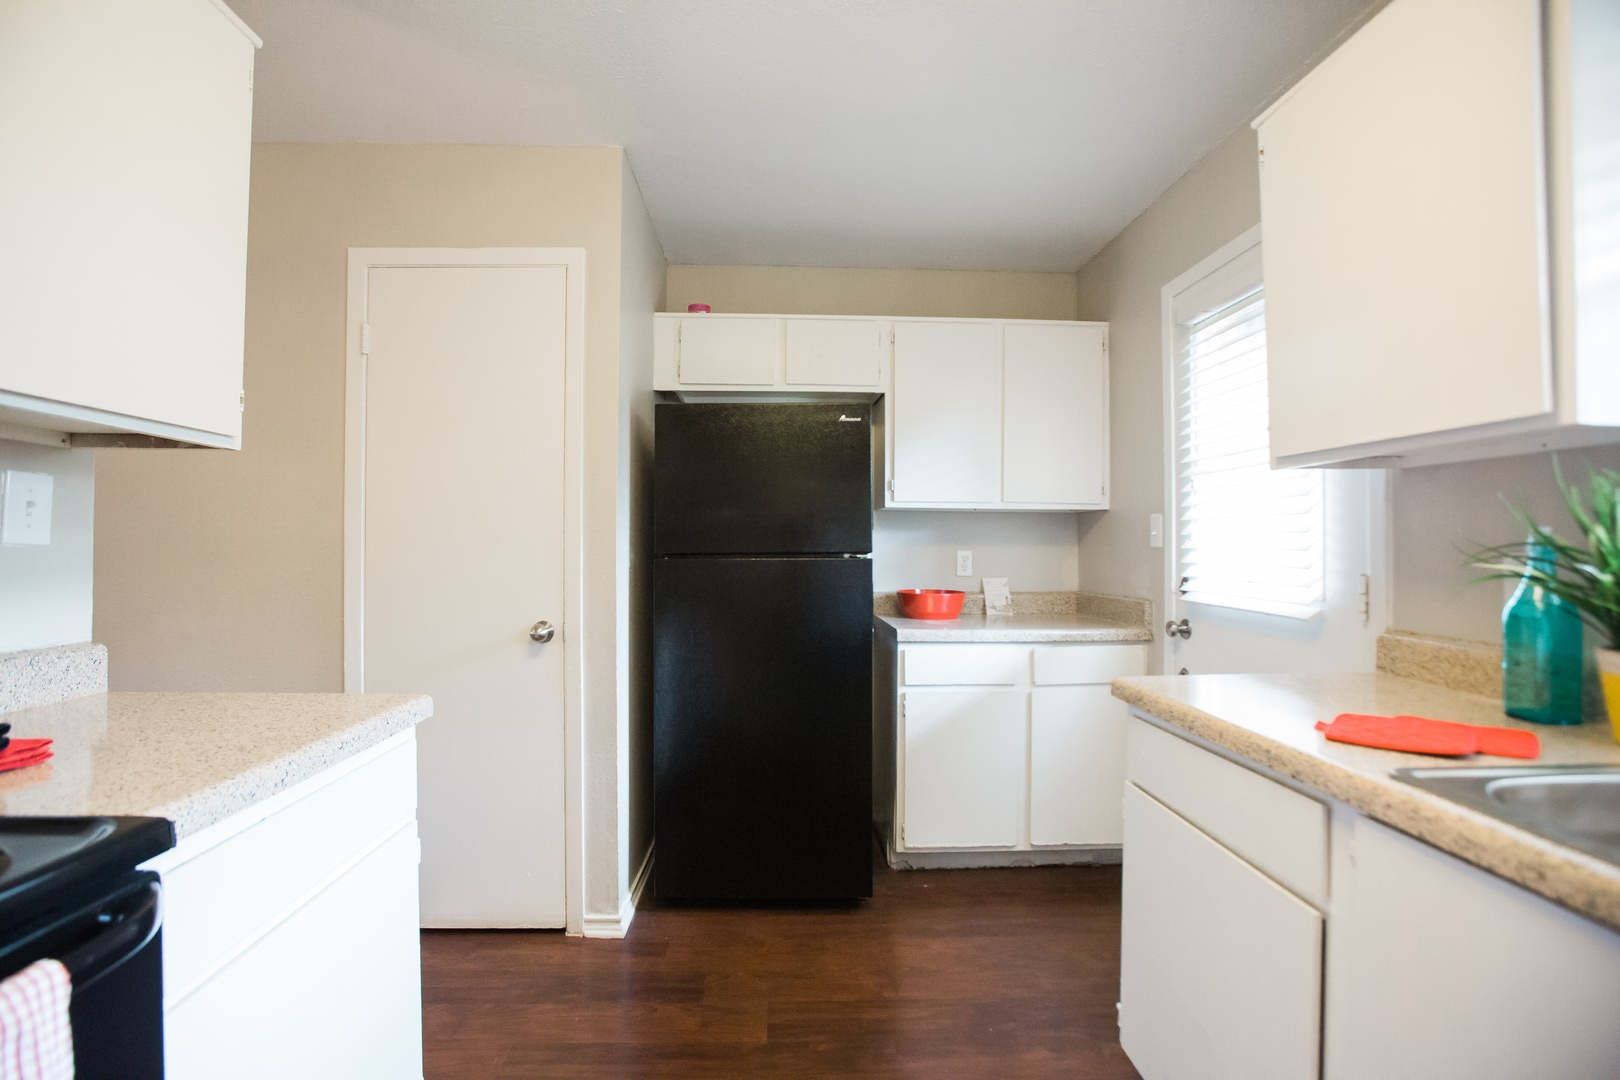 Apartments for Rent in Benbrook, TX | Hillstone Trinity Oaks - Home